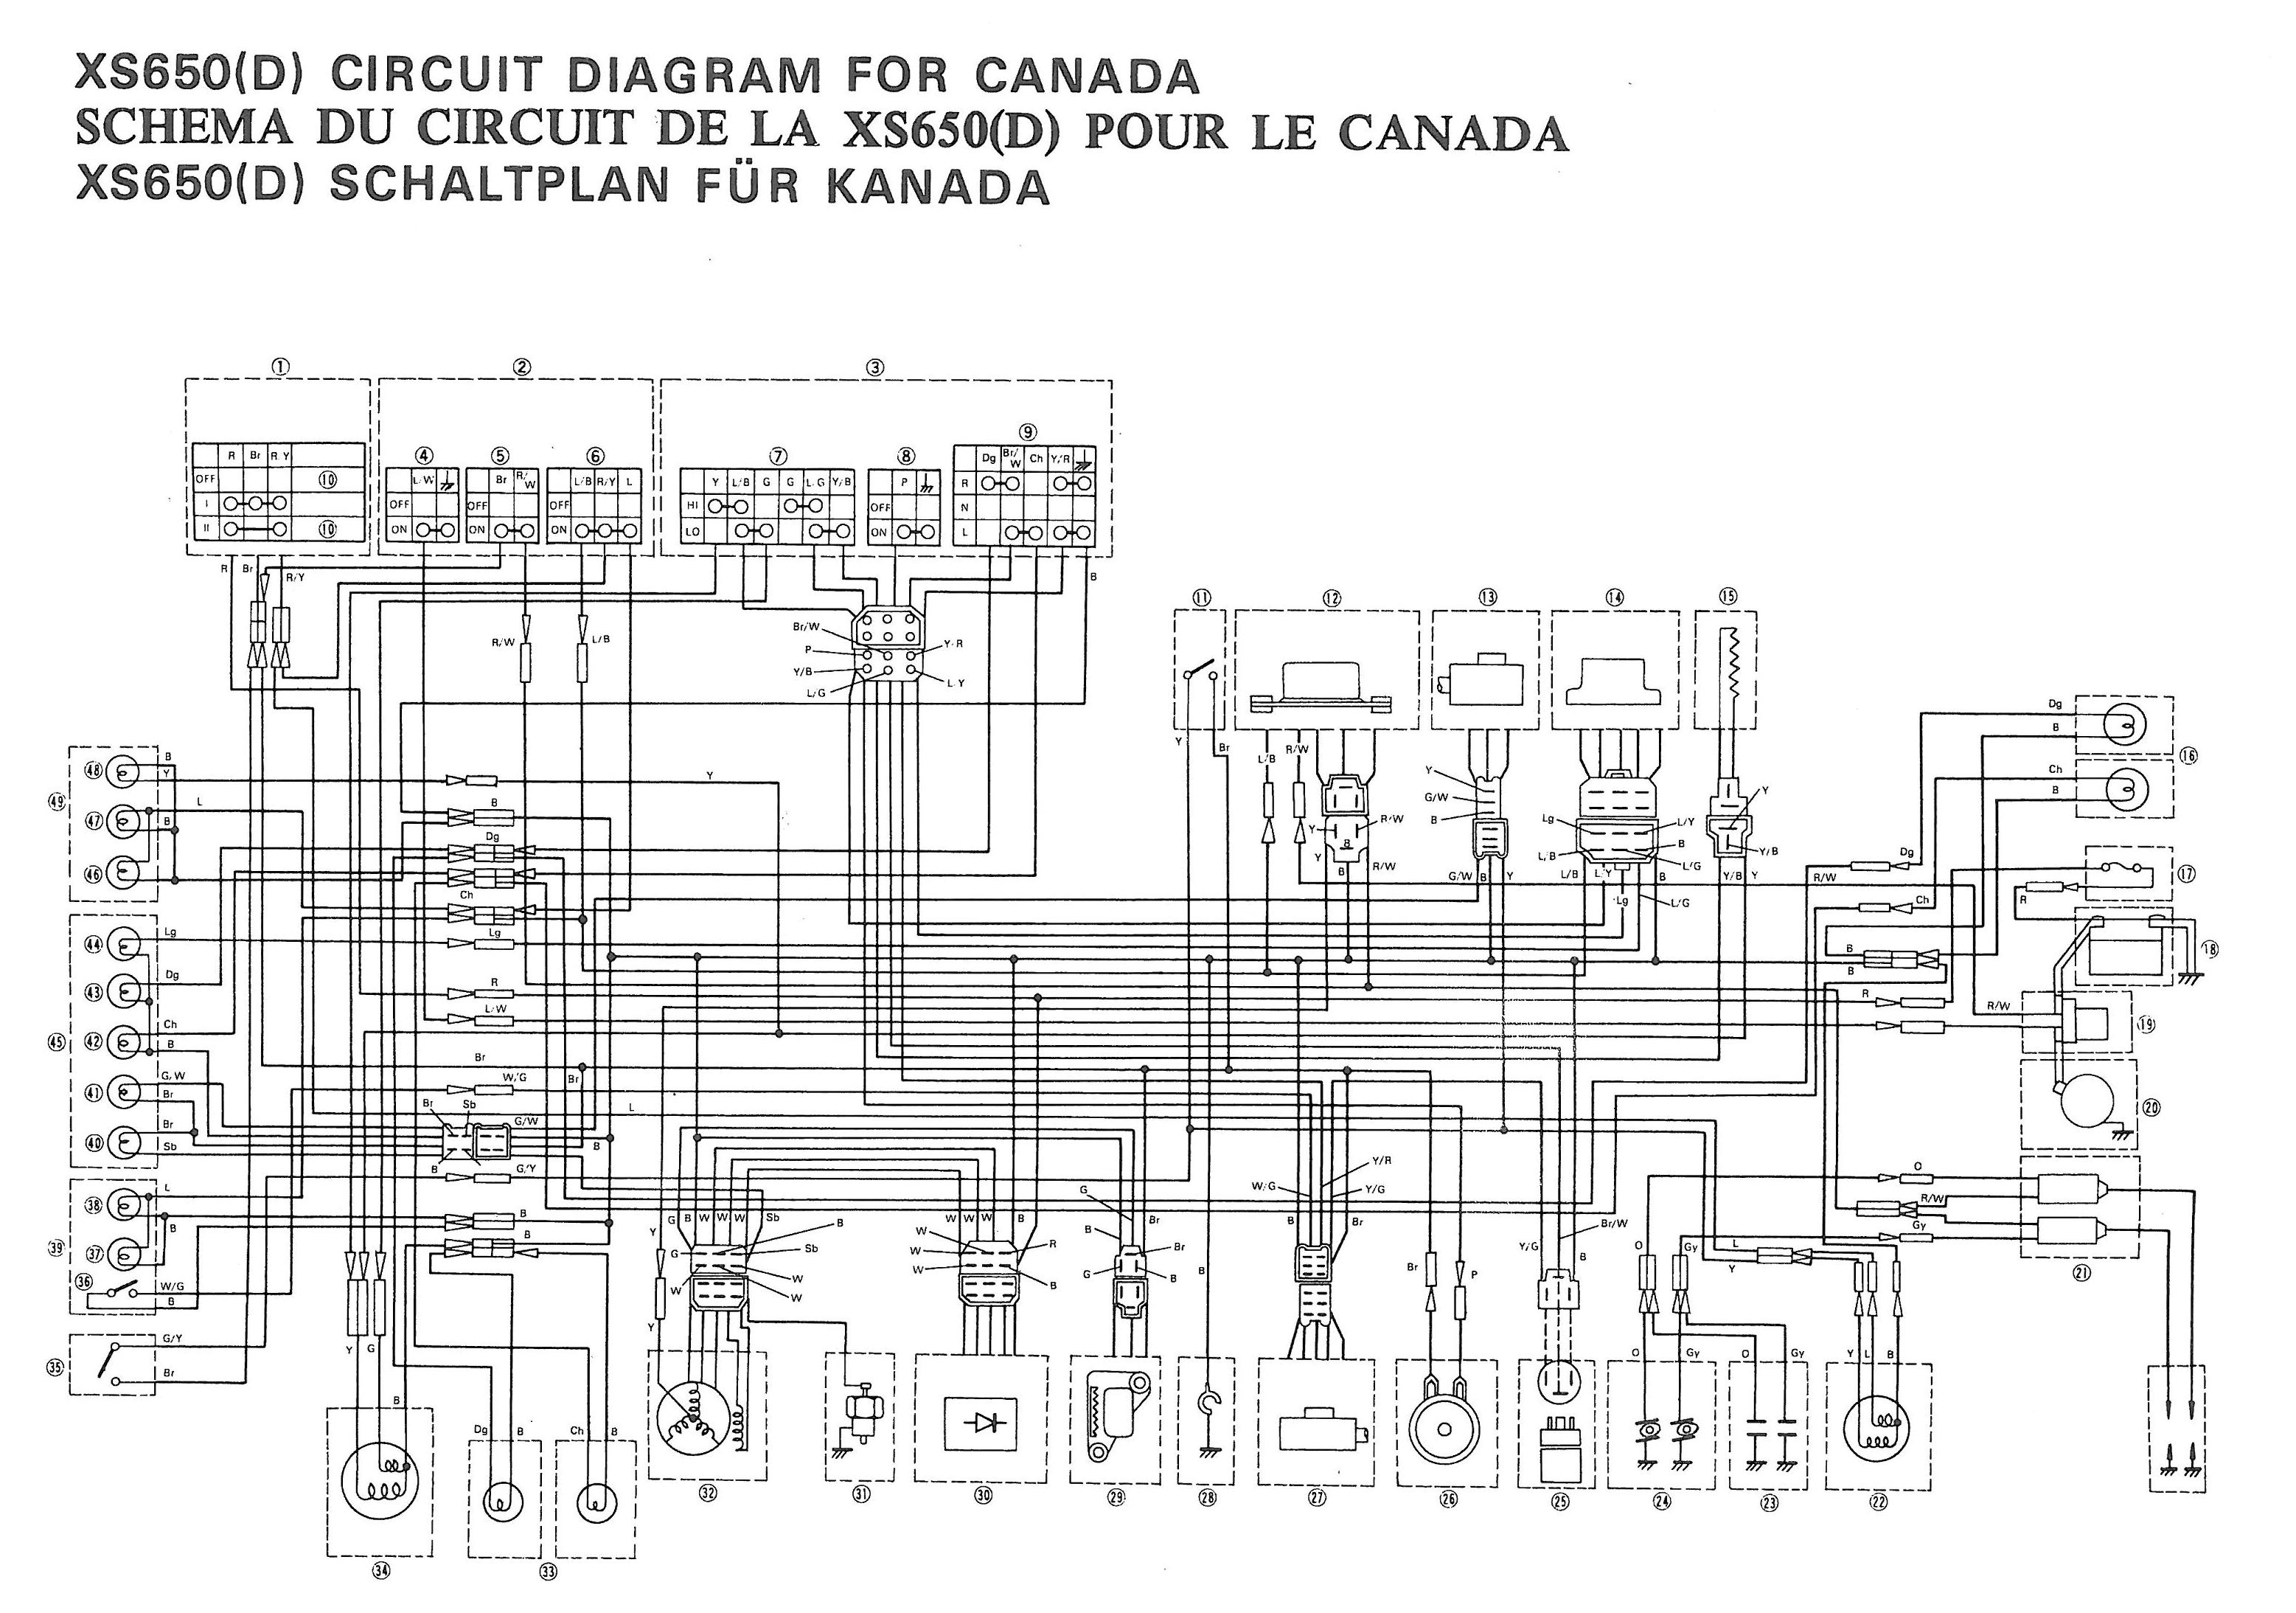 77 xs d wiring canada?w=1000&h=702 some wiring diagrams yamaha xs650 forum readingrat net 1978 yamaha xs650 wiring diagram at virtualis.co